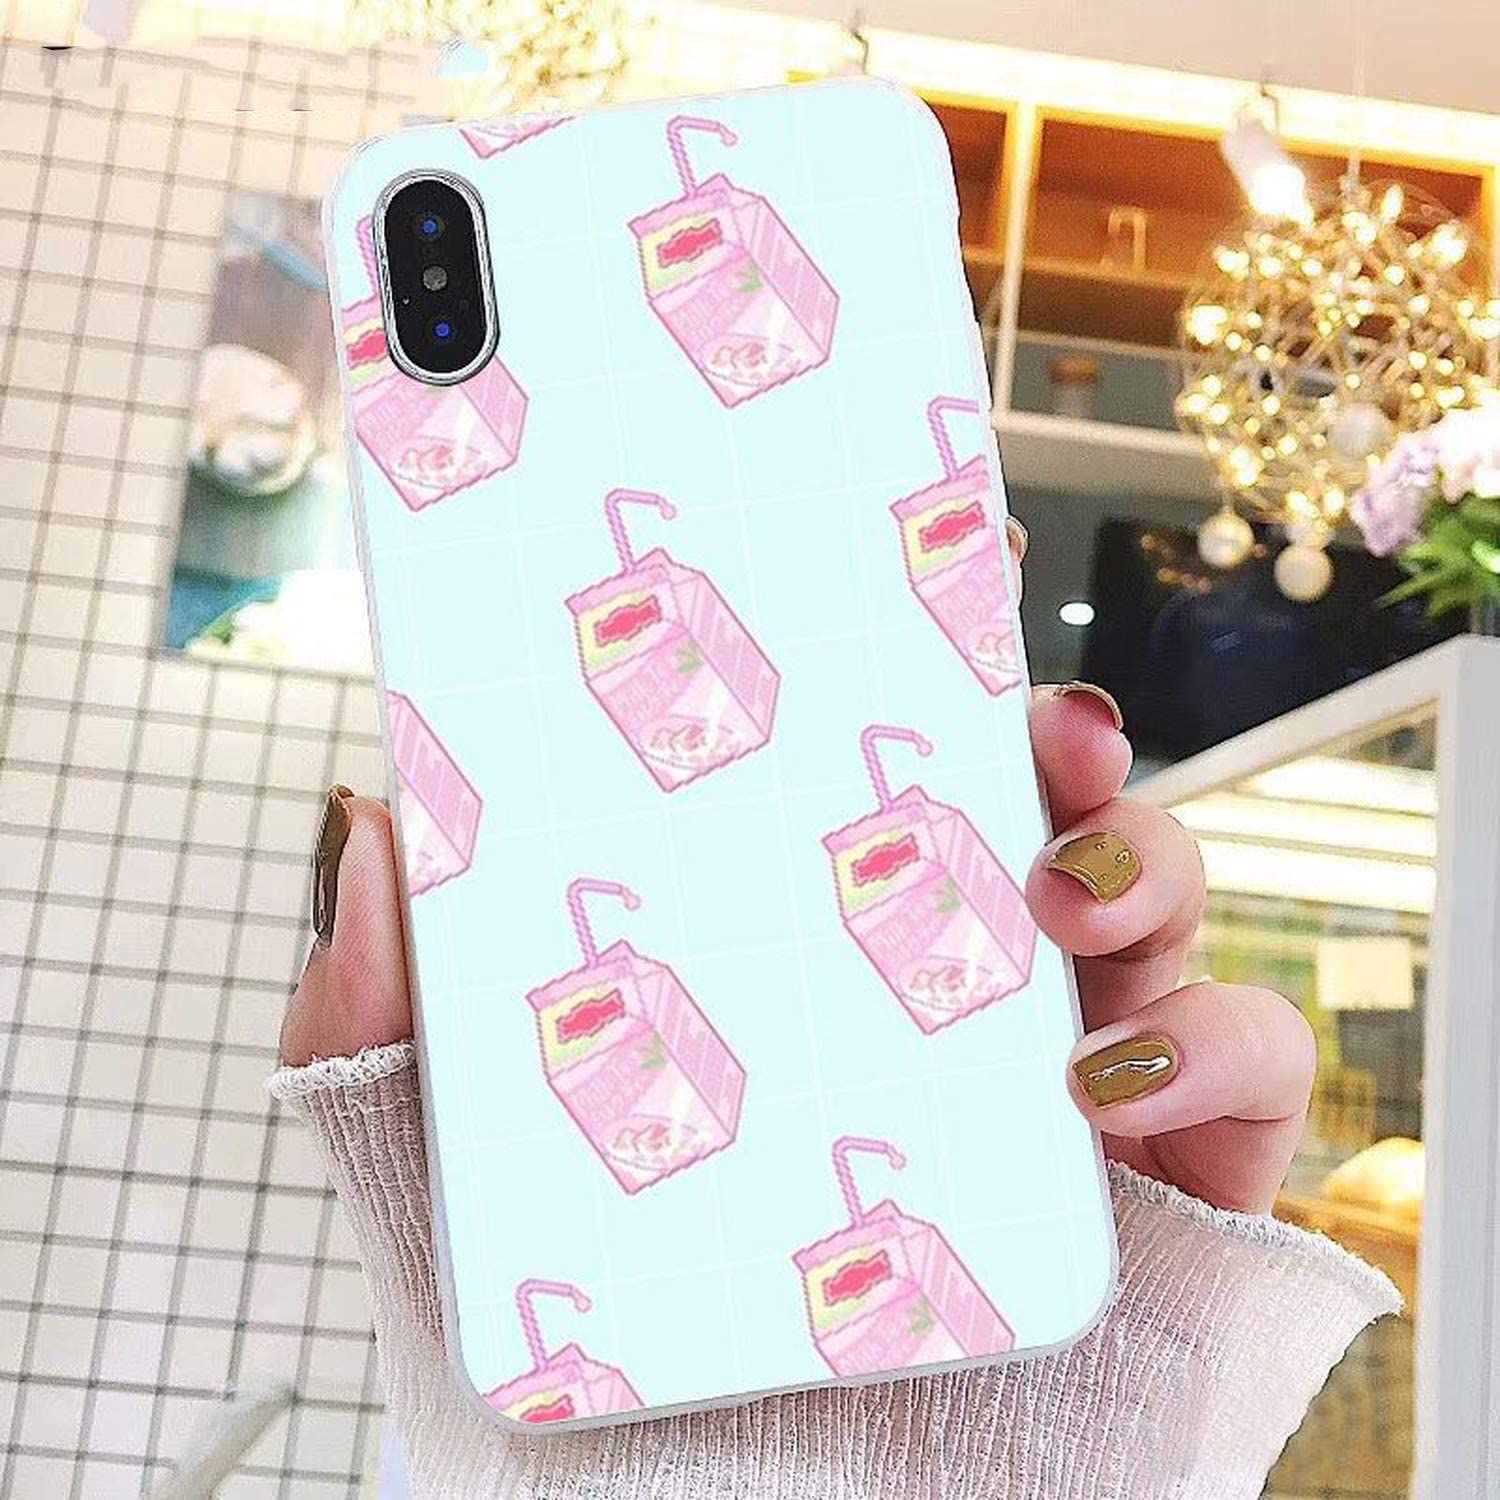 Kawaii Japanese Strawberry Milk Box Phone case for iPhone 11 Pro 11Pro Max 5 5Sx 6 7 7plus 8 8Plus X XS MAX XR-in Half,for iphone6 iphone6S,A8